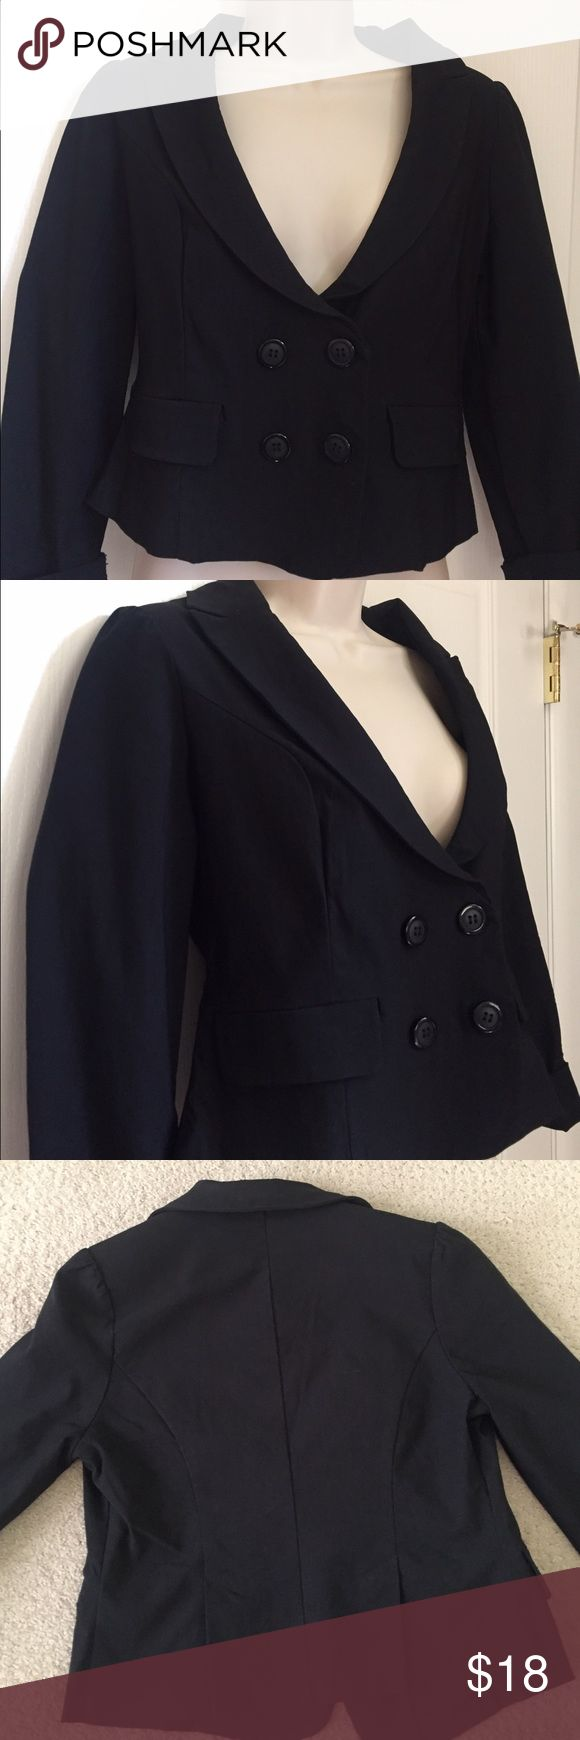 Love Culture Black Blazer Black Blazer buttoned or can unbutton. Long sleeve although pictured with sleeves rolled up. Padded shoulders. Great quality, only worn twice. Large although runs small, so more like medium. 74% Cotton, 22% Nylon, 4% Spandex. Love Culture Jackets & Coats Blazers